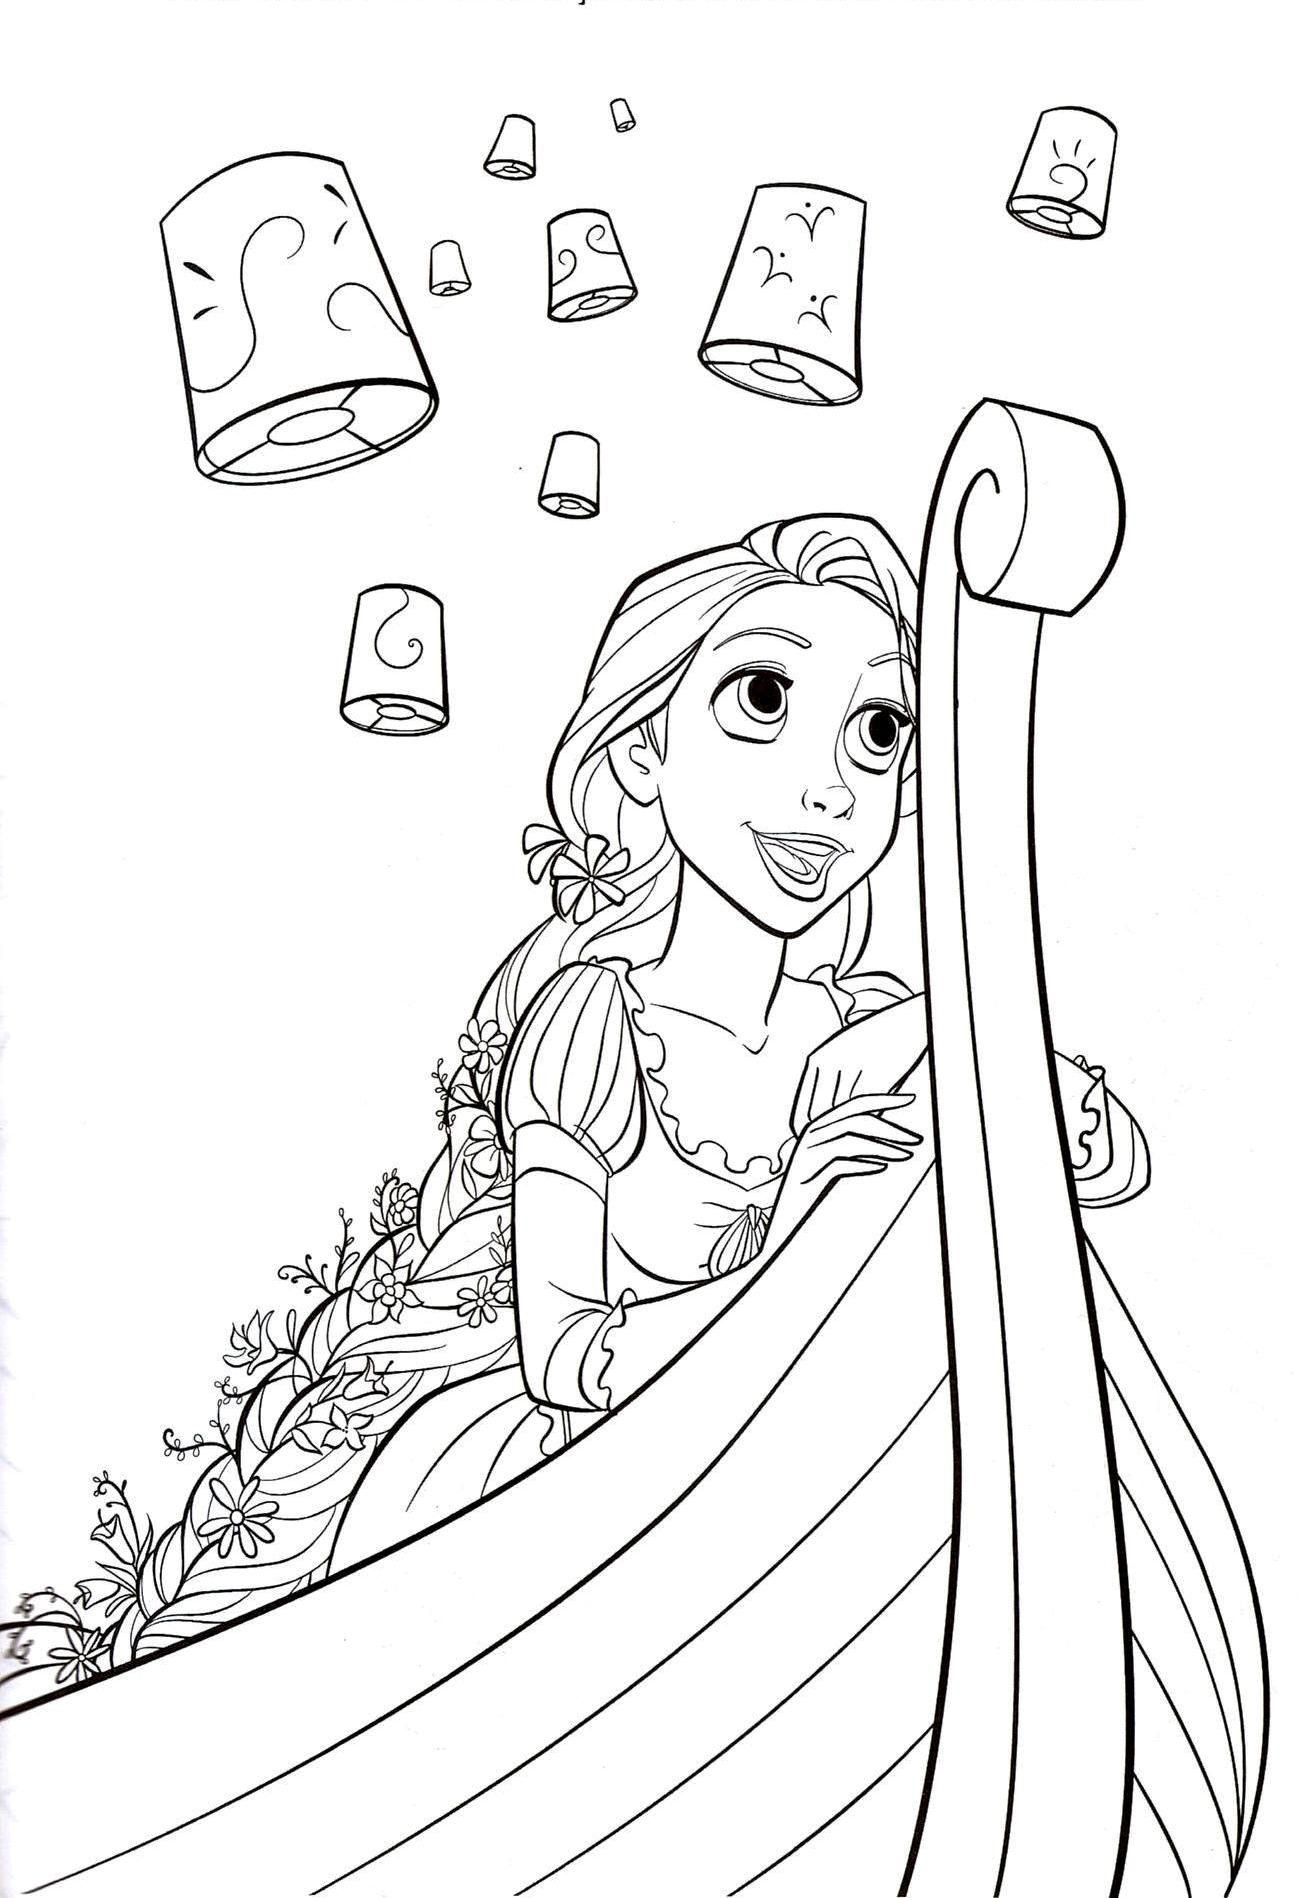 disney-tangled-coloring-pages-ashdayarts-sta-hq-image-of-tangled-coloring- pages.j… | Tangled coloring pages, Disney princess coloring pages, Rapunzel  coloring pages